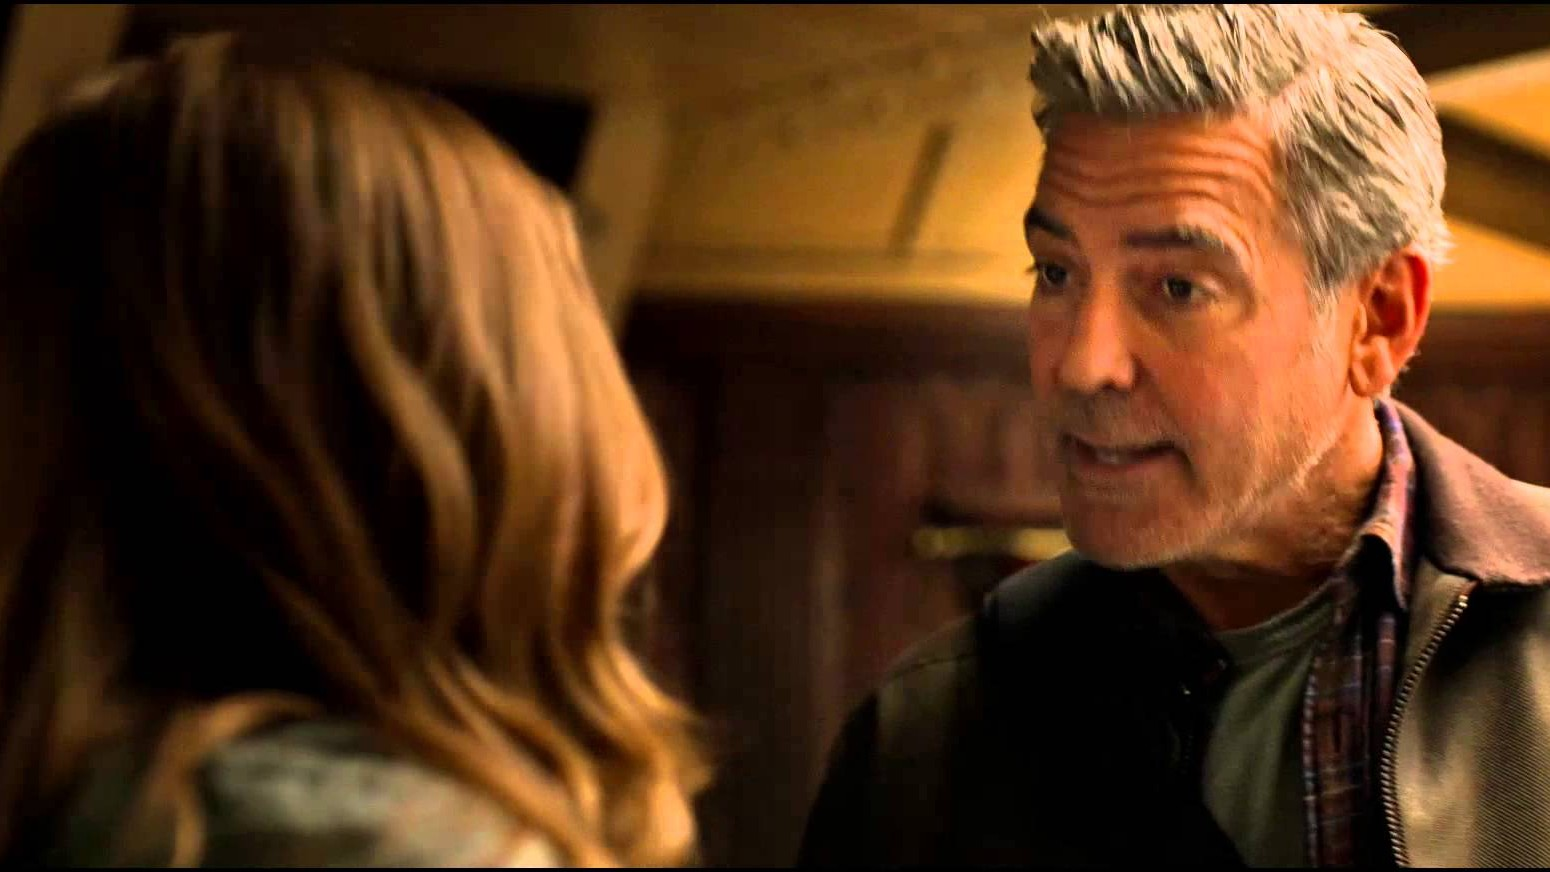 Disney's Tomorrowland – Now Playing In Theaters!